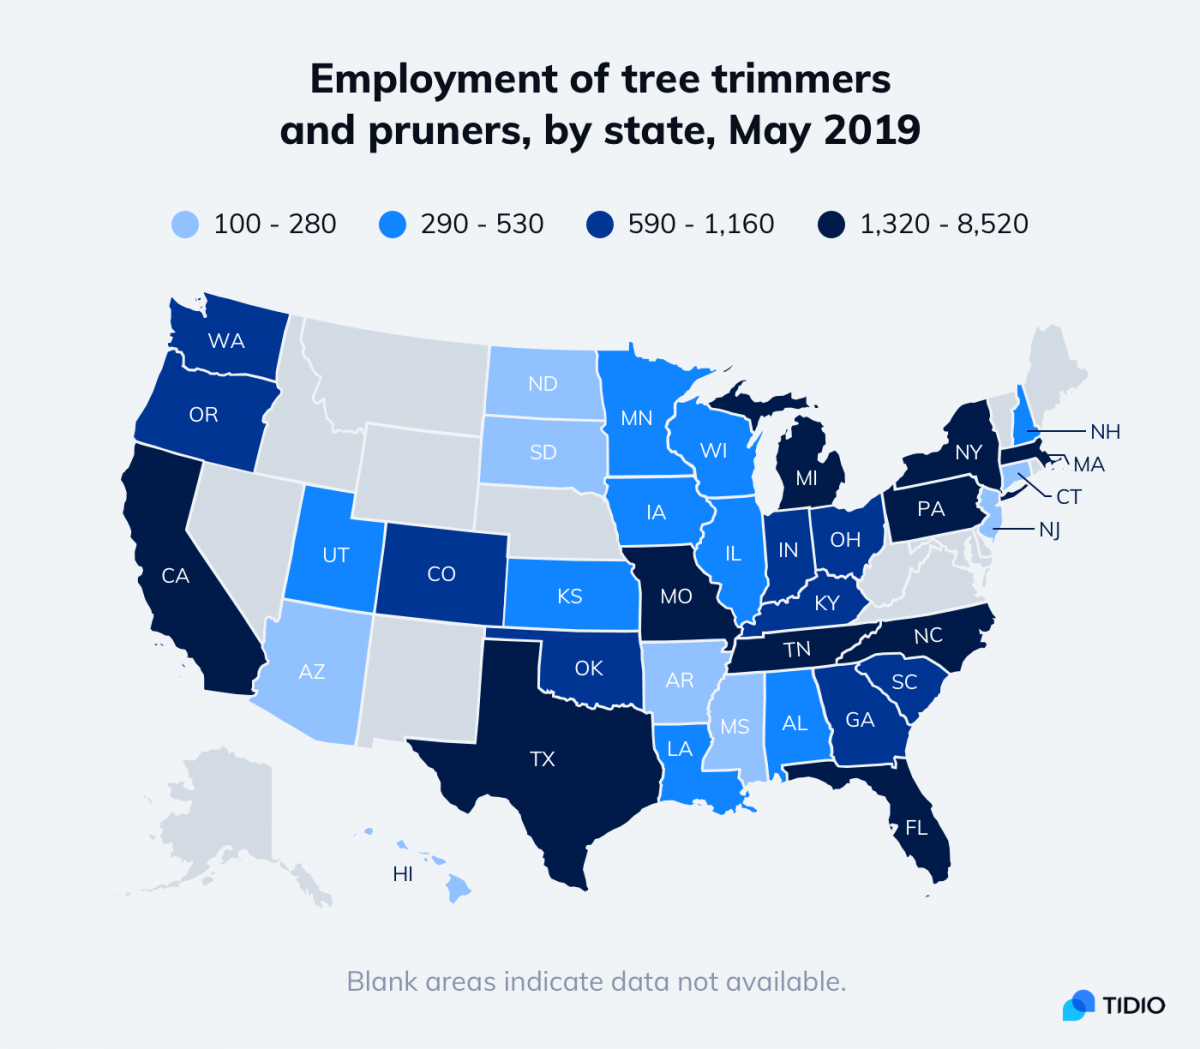 Map of employment of tree trimmers and pruners, by state, in May 2019